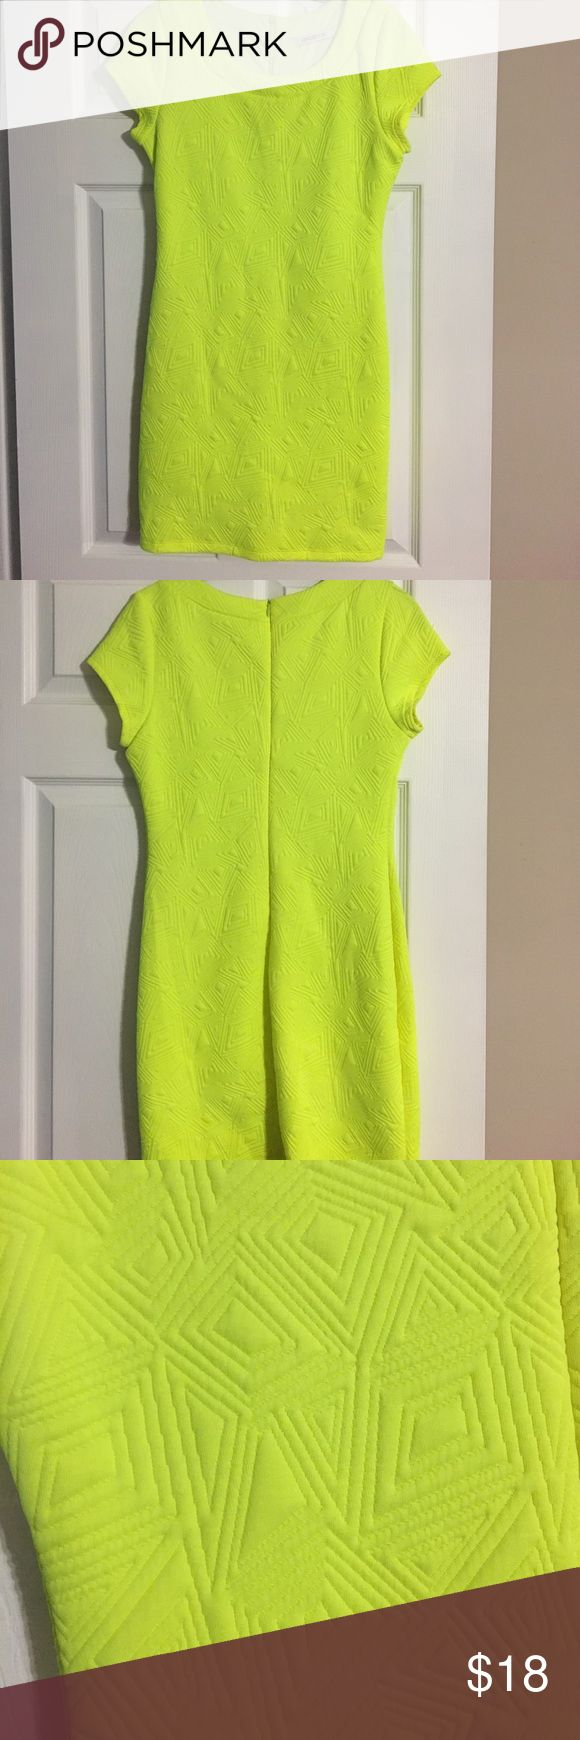 Lime geo-pattern mini dress Purchased in south beach, Miami for a girls night out... this dress fits super cute and is stretch material.... lightly lined and zips in the back Arden B Dresses Mini